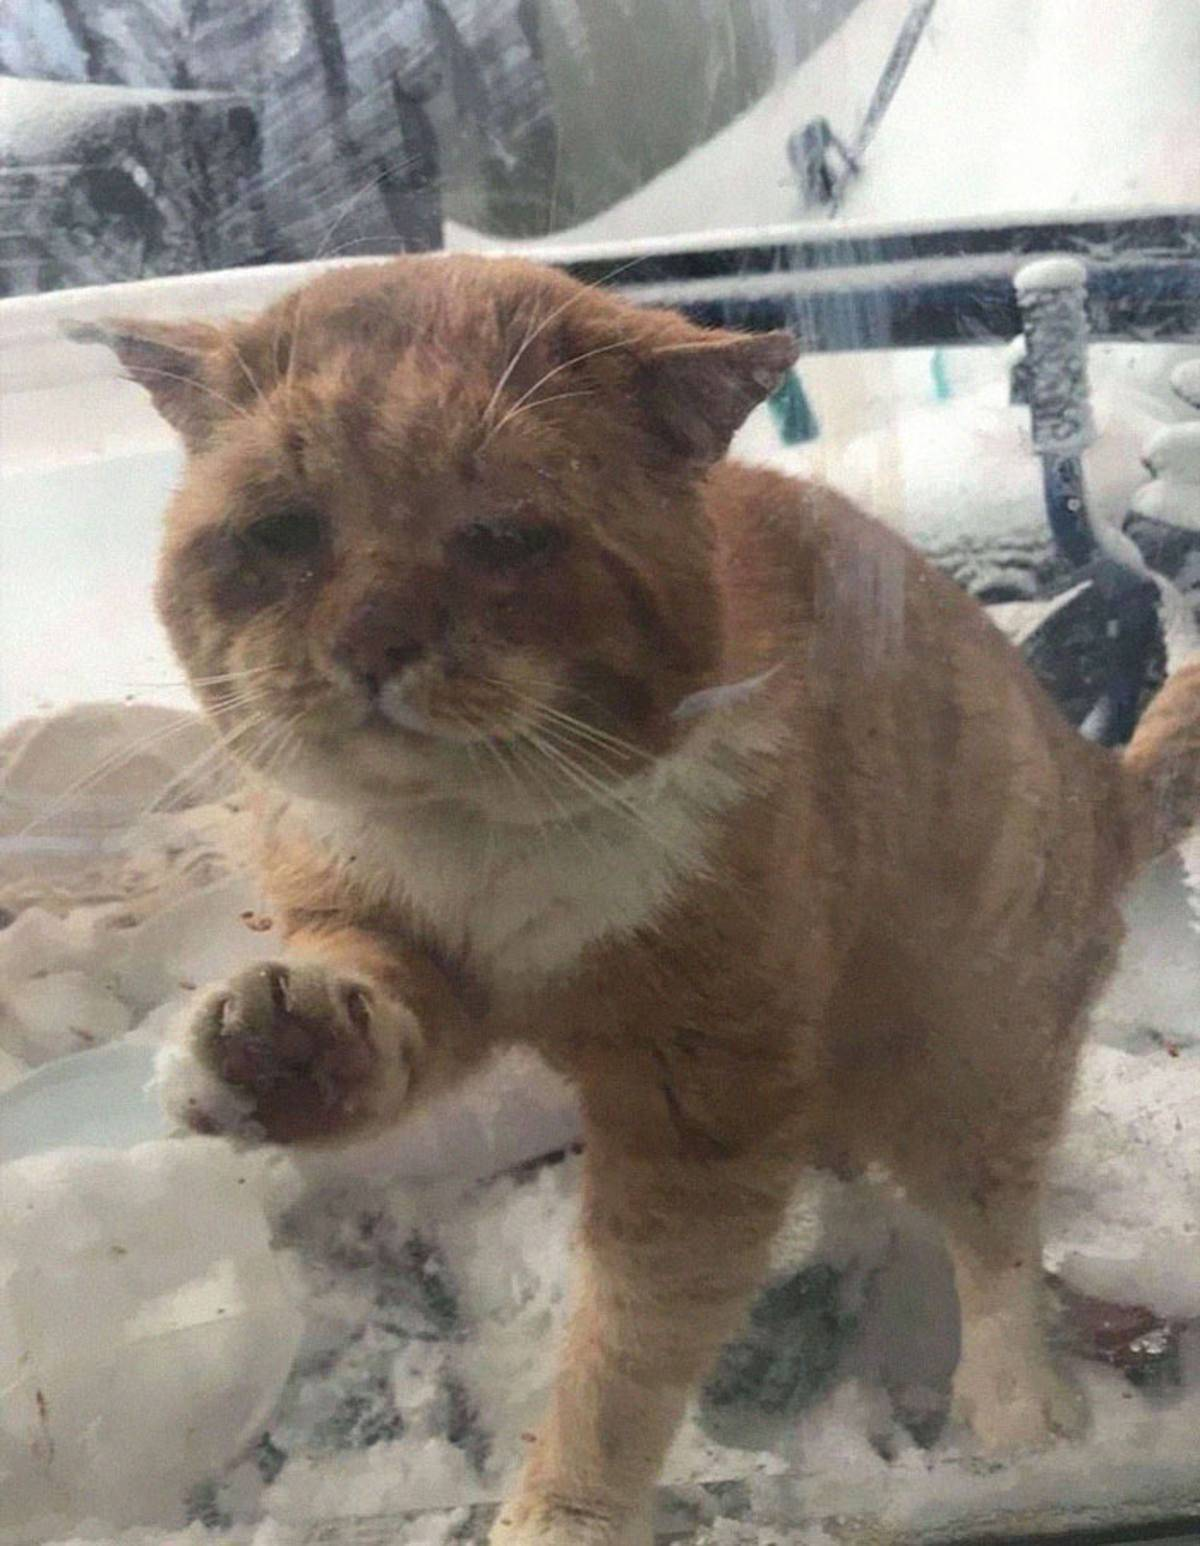 A lone cat claws at a window in the snow.